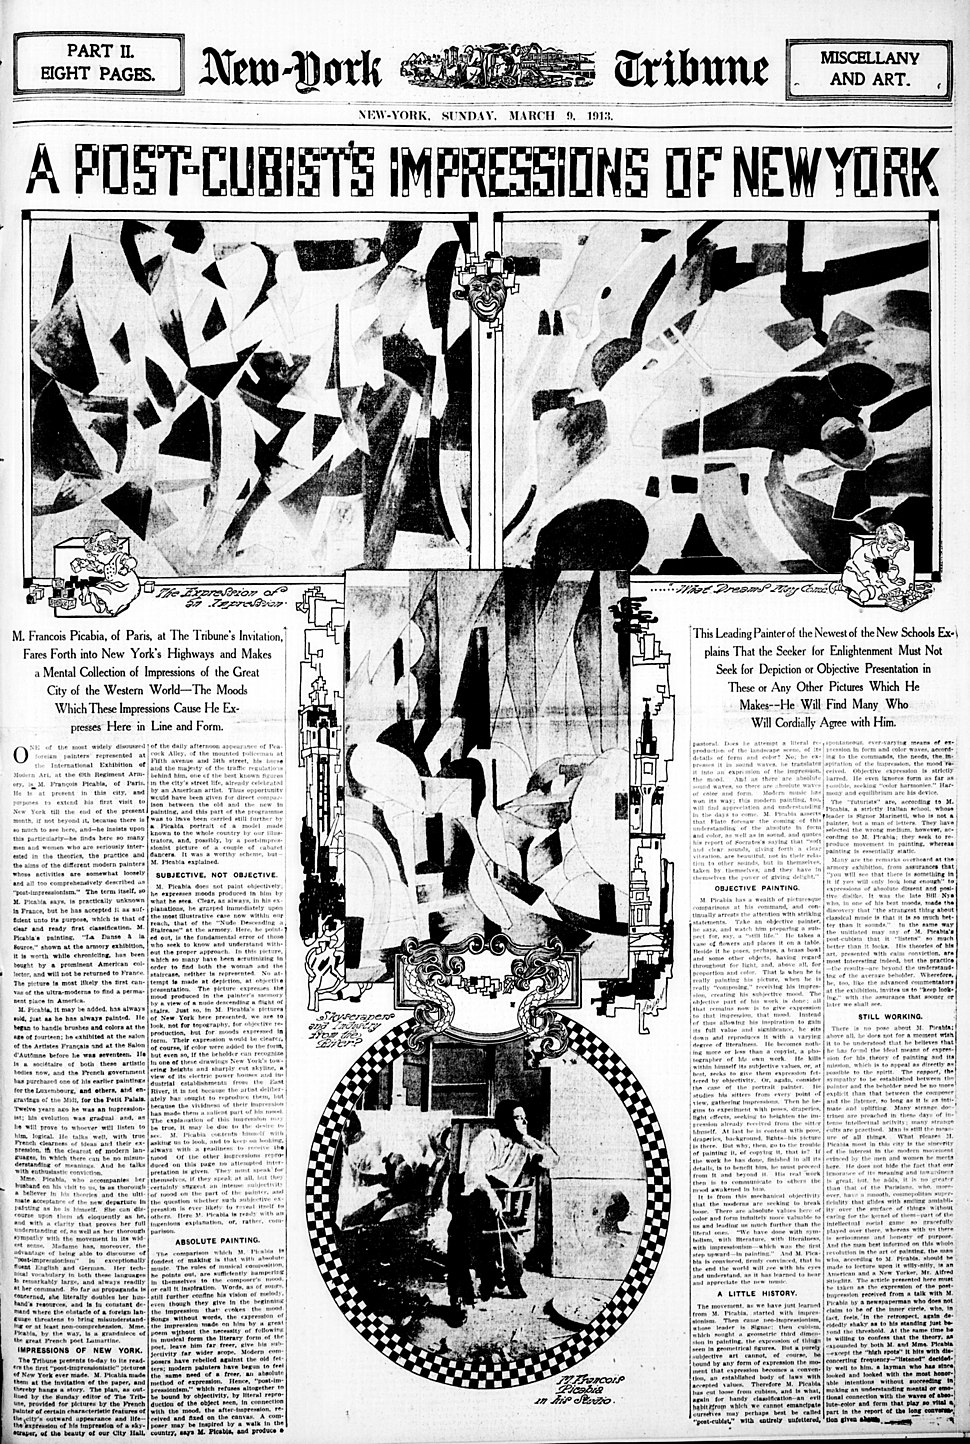 Francis Picabia paintings published in New York Tribune, 9 March 1913